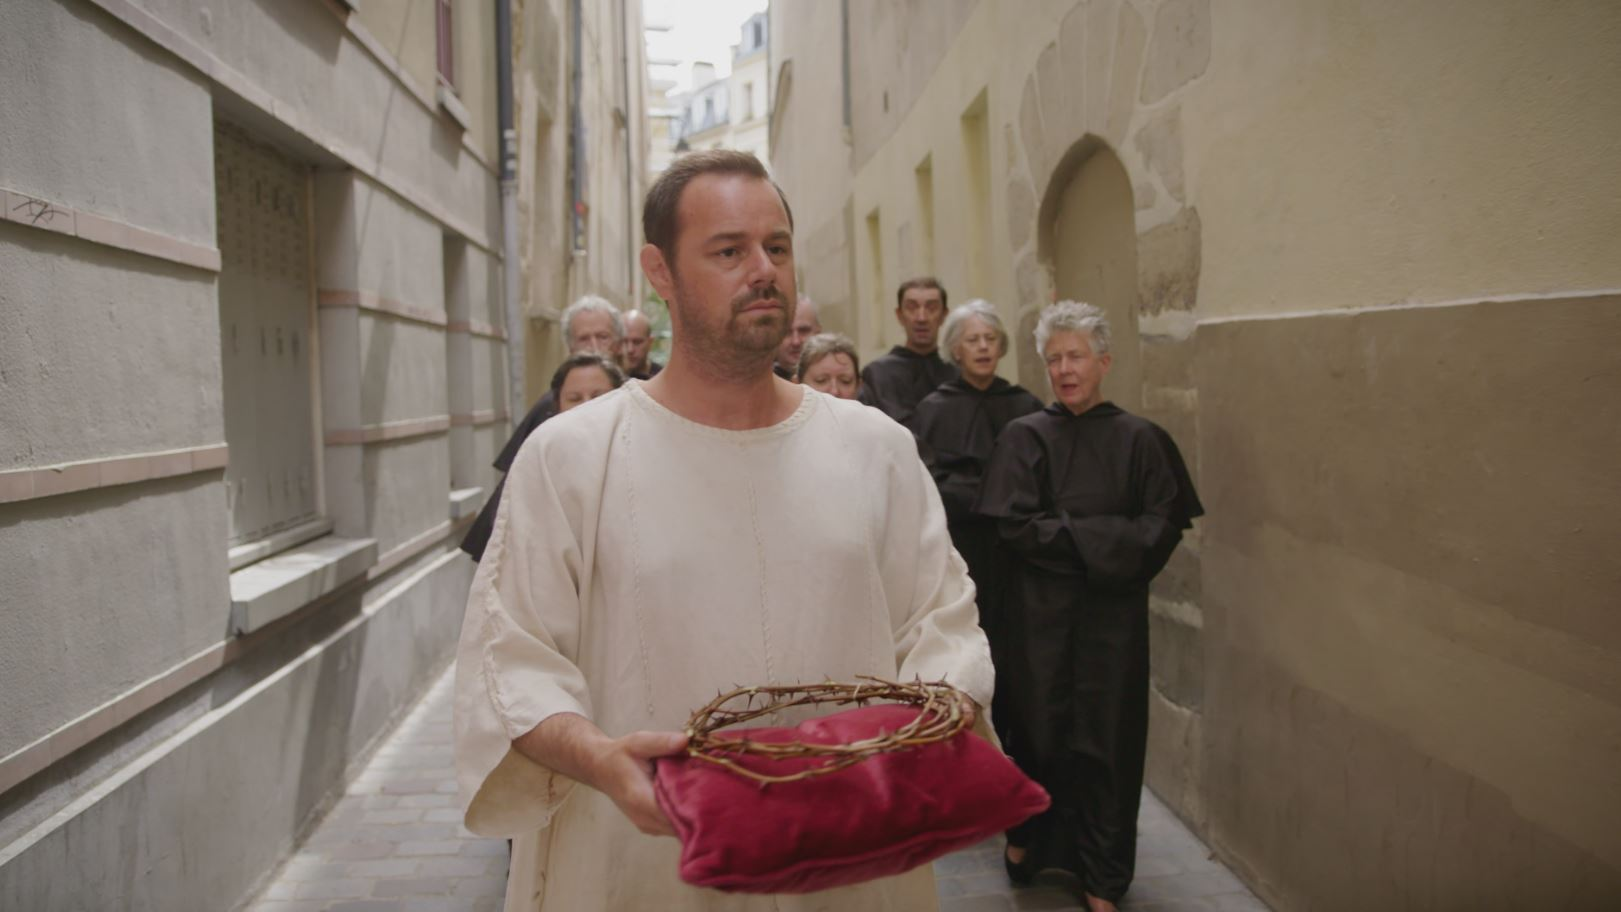 EastEnders star Danny Dyer is related to an actual Saint